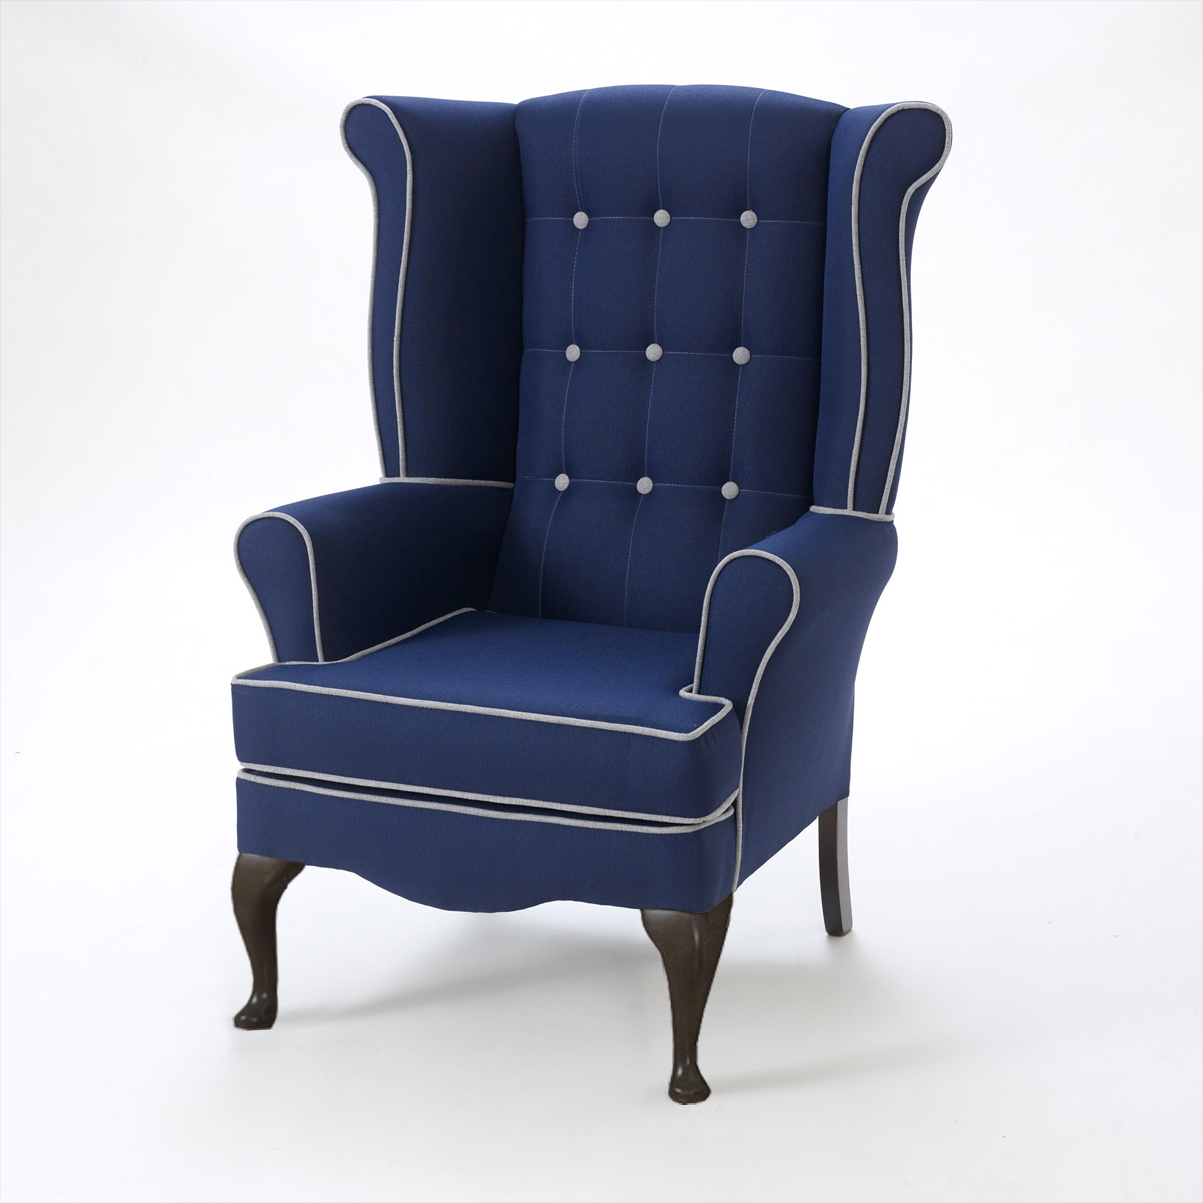 Chichester button wing back chair & Chichester button wing back chair - Shackletons